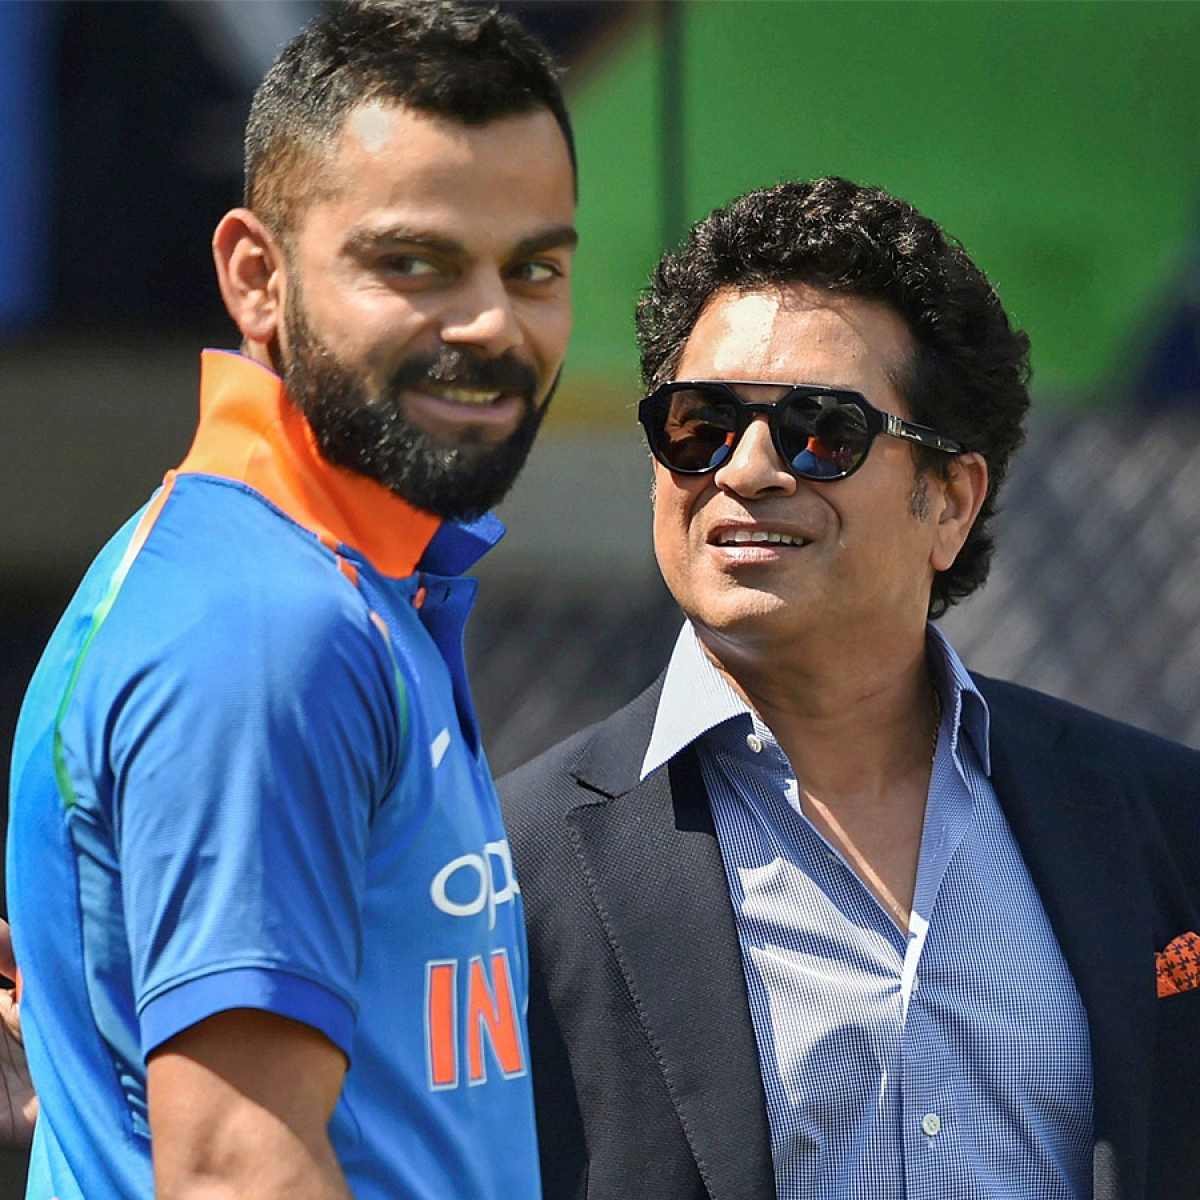 In God's company: Virat Kohli one century away from matching Sachin Tendulkar's record